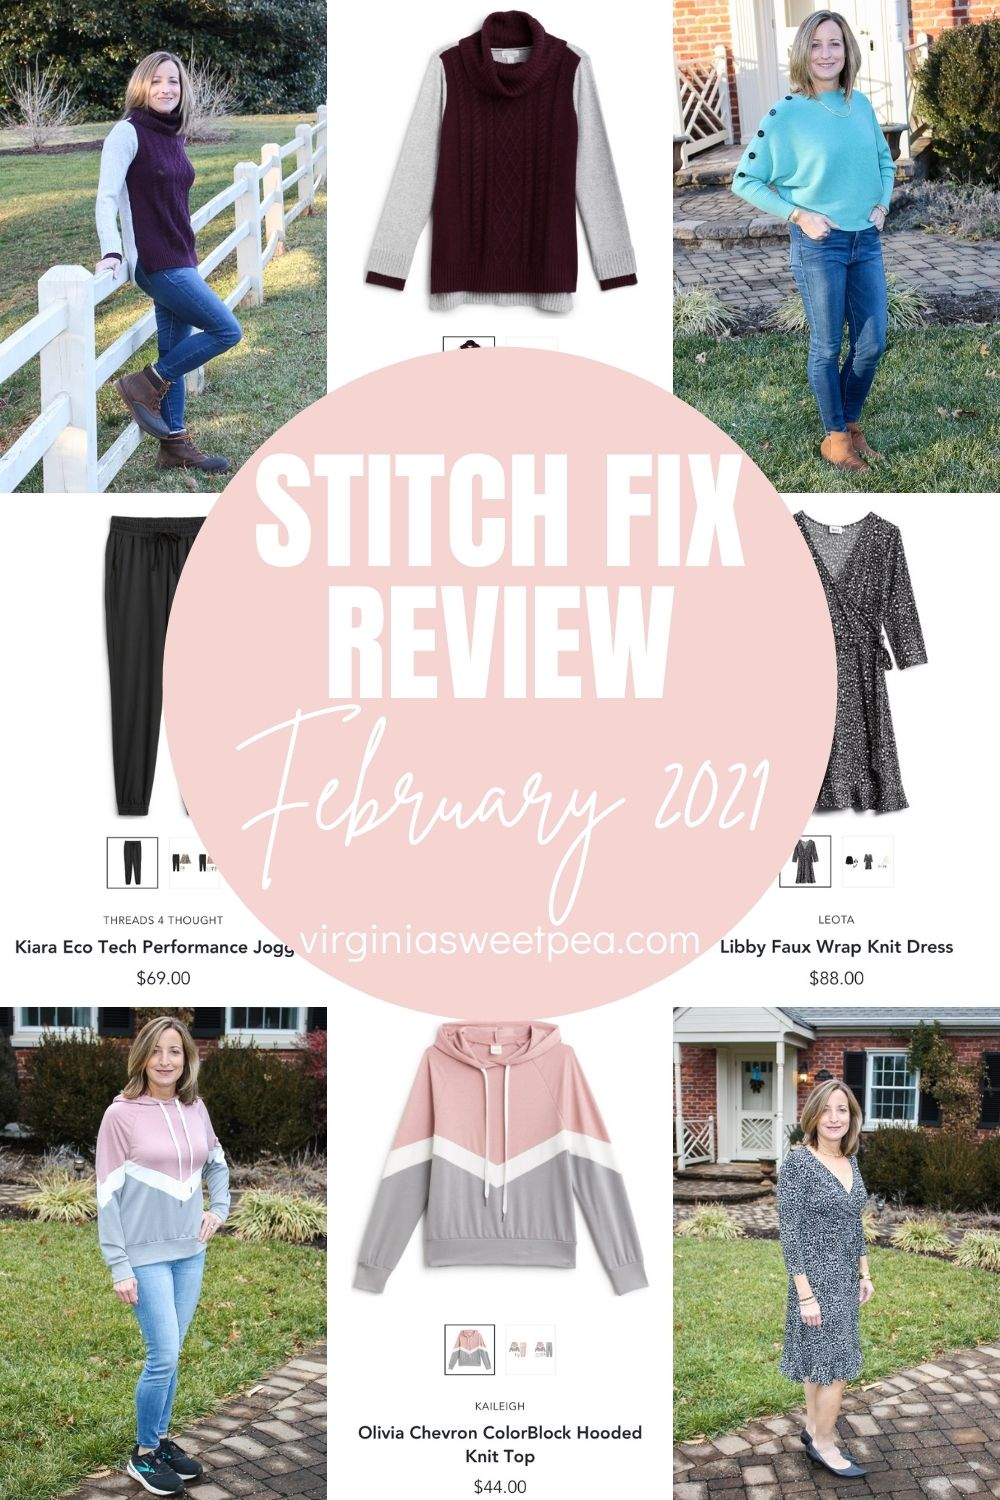 February is here and this month's Stitch Fix box was filled with winter fashion to enjoy.  Athflow is a huge trend and a hoodie plus joggers were styles sent to go with that look.  Stitch Fix outfits dominate my wardrobe and sweaters and a dress are perfect to wear for winter.  See all the details on each item and get Stitch Fix inspiration for your next box.  #stitchfix #stitchfixreview via @spaula